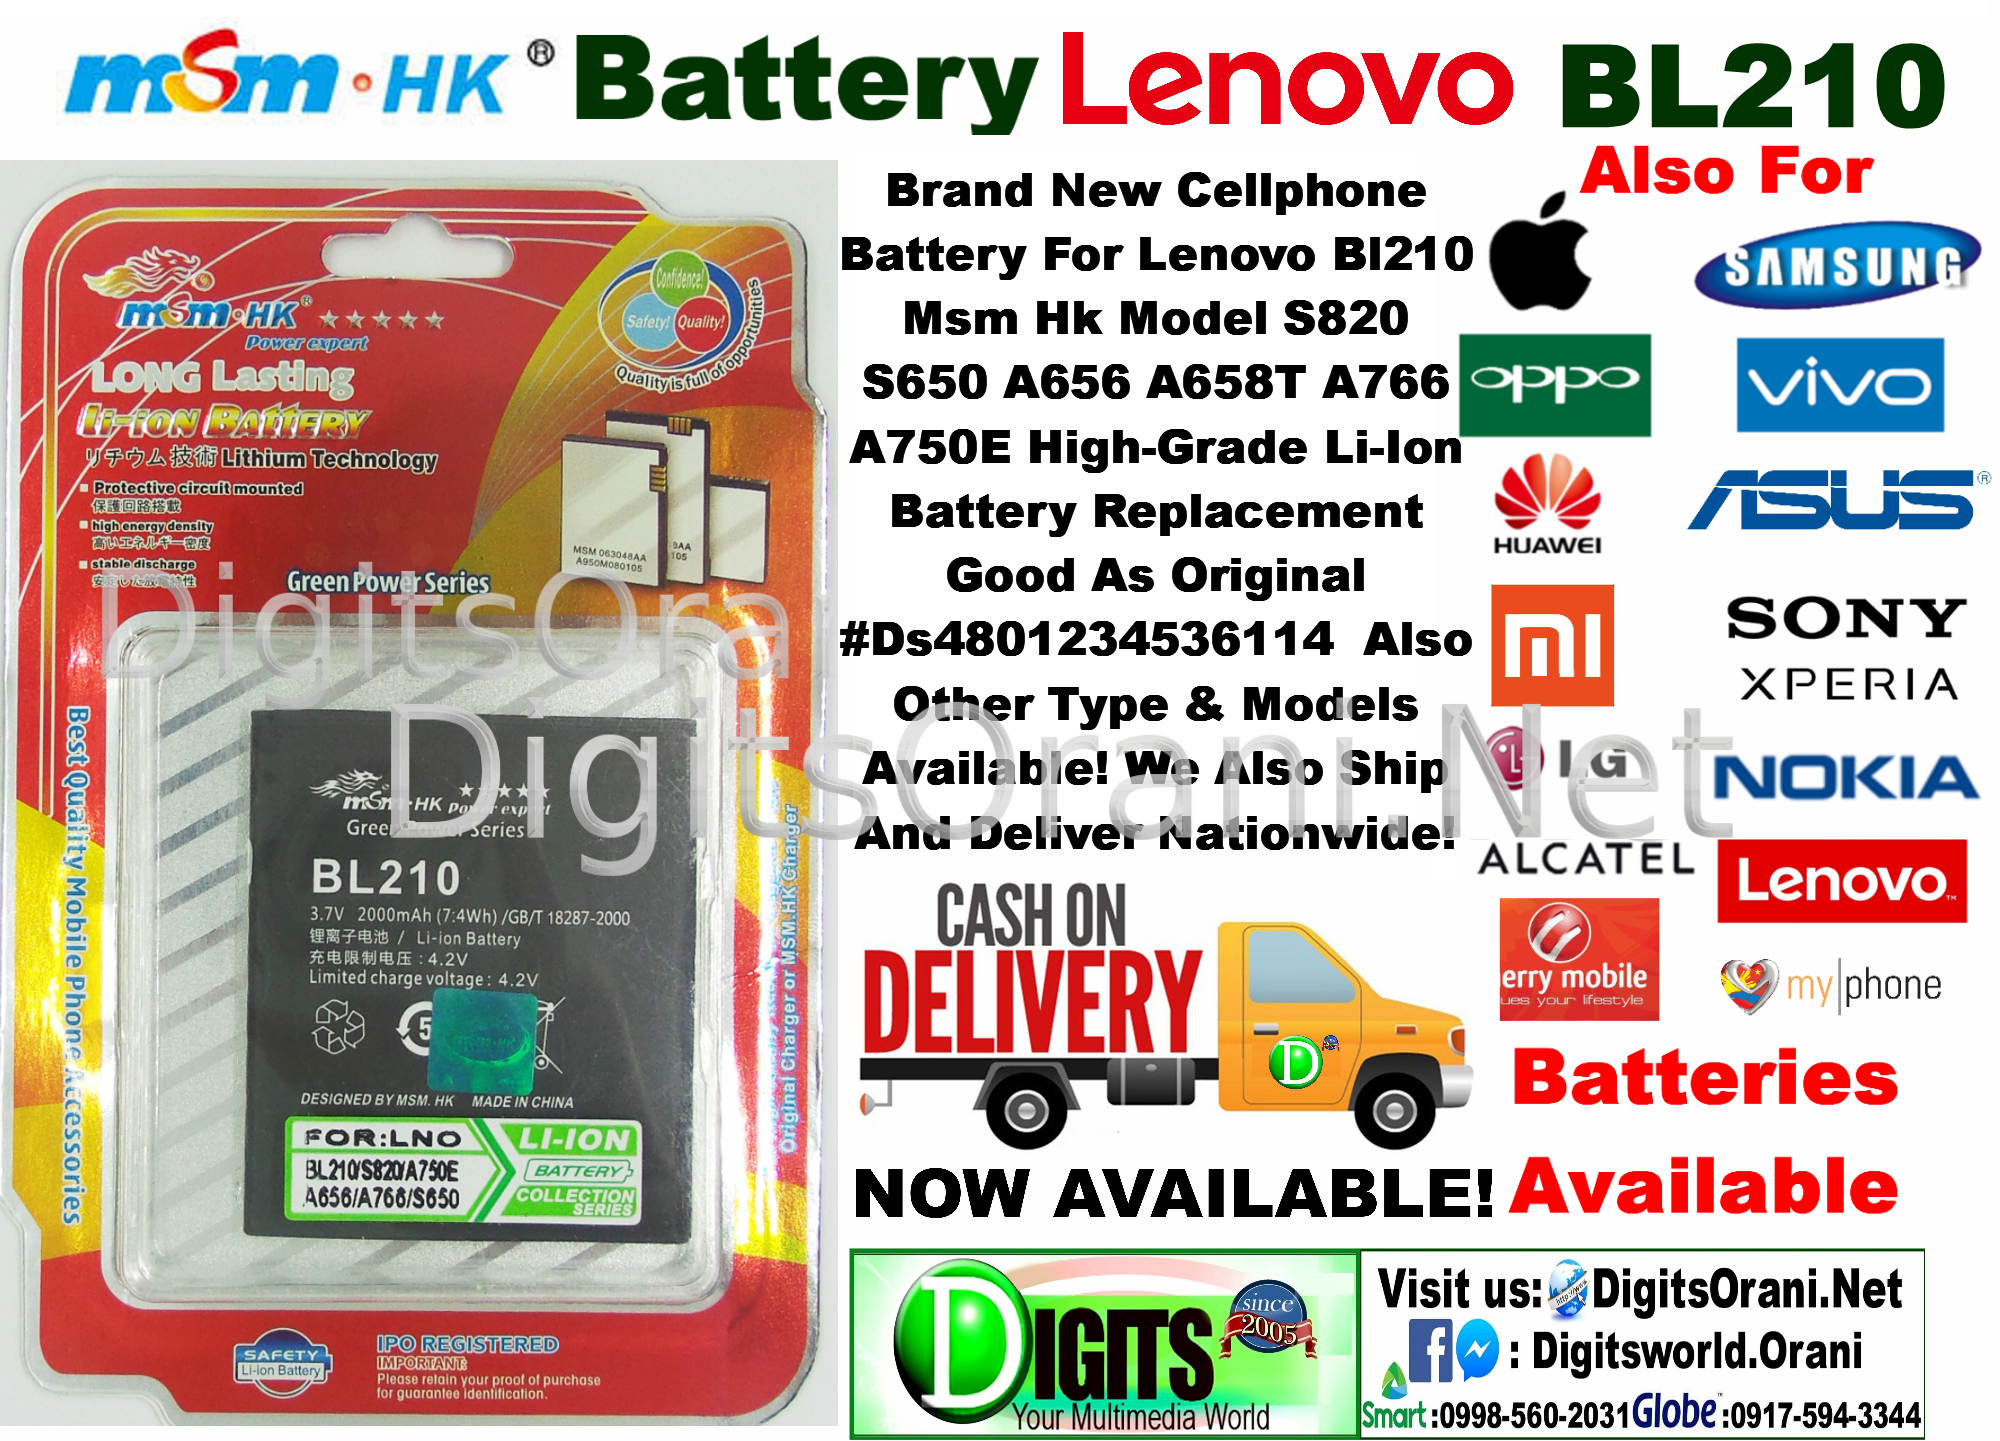 Cellphone Battery For Lenovo Bl210 Msm Hk Model S820 S650 A656 A658T A766 A750E High-Grade Li-Ion Battery Replacement Good As Original #Ds4801234536114